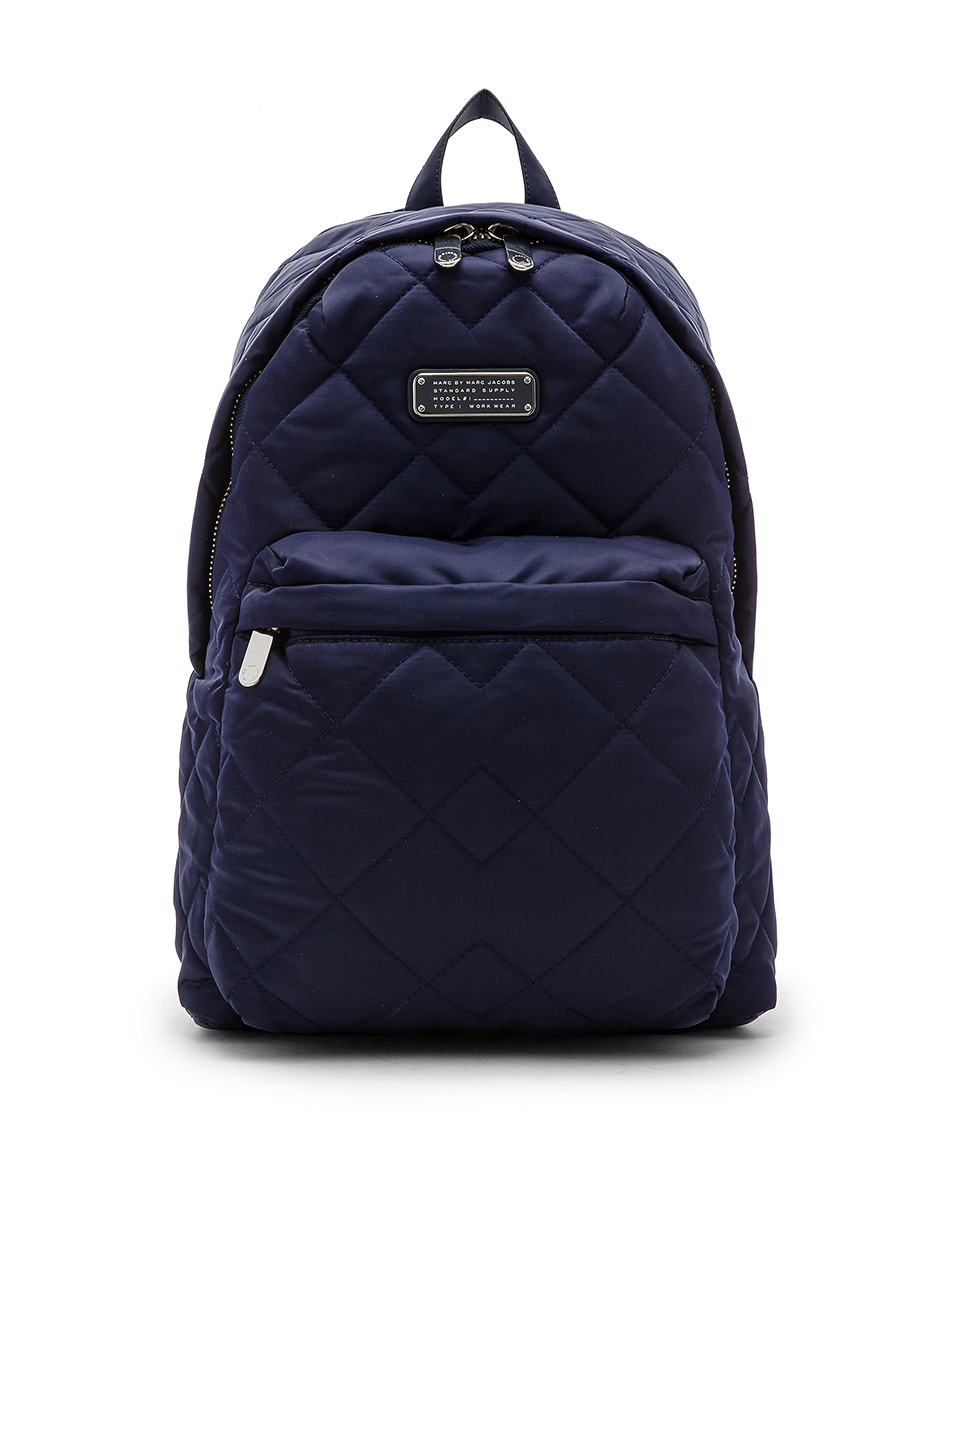 marc by marc jacobs crosby quilt nylon backpack in blue lyst. Black Bedroom Furniture Sets. Home Design Ideas